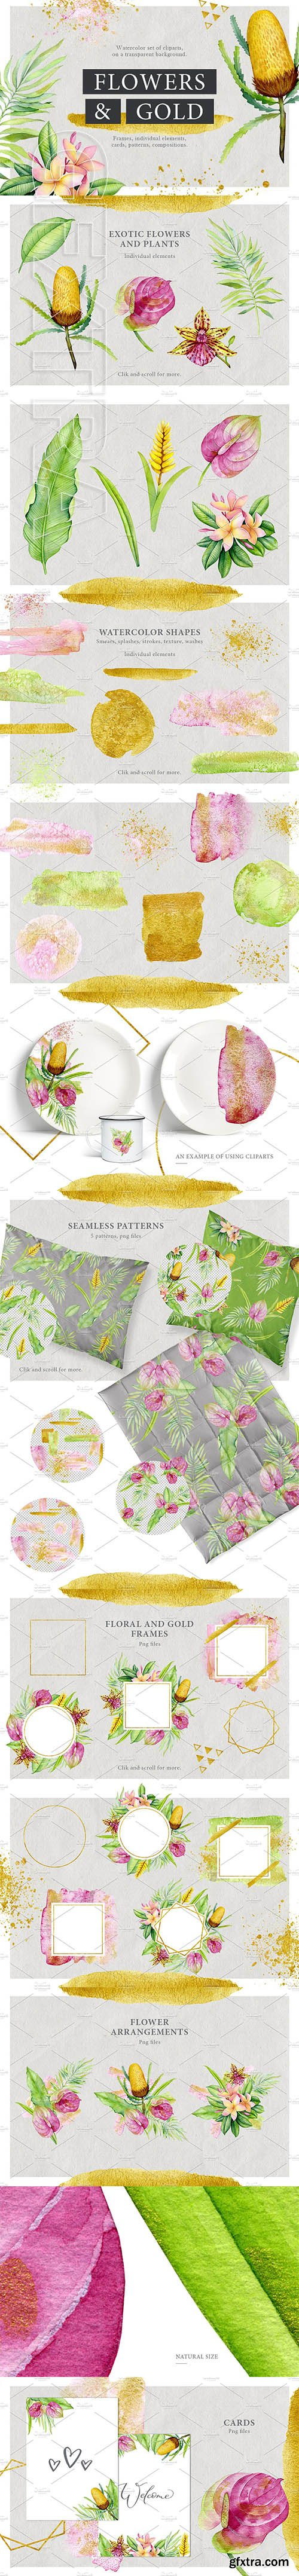 CreativeMarket - Watercolor stains & tropical flowers 2580670